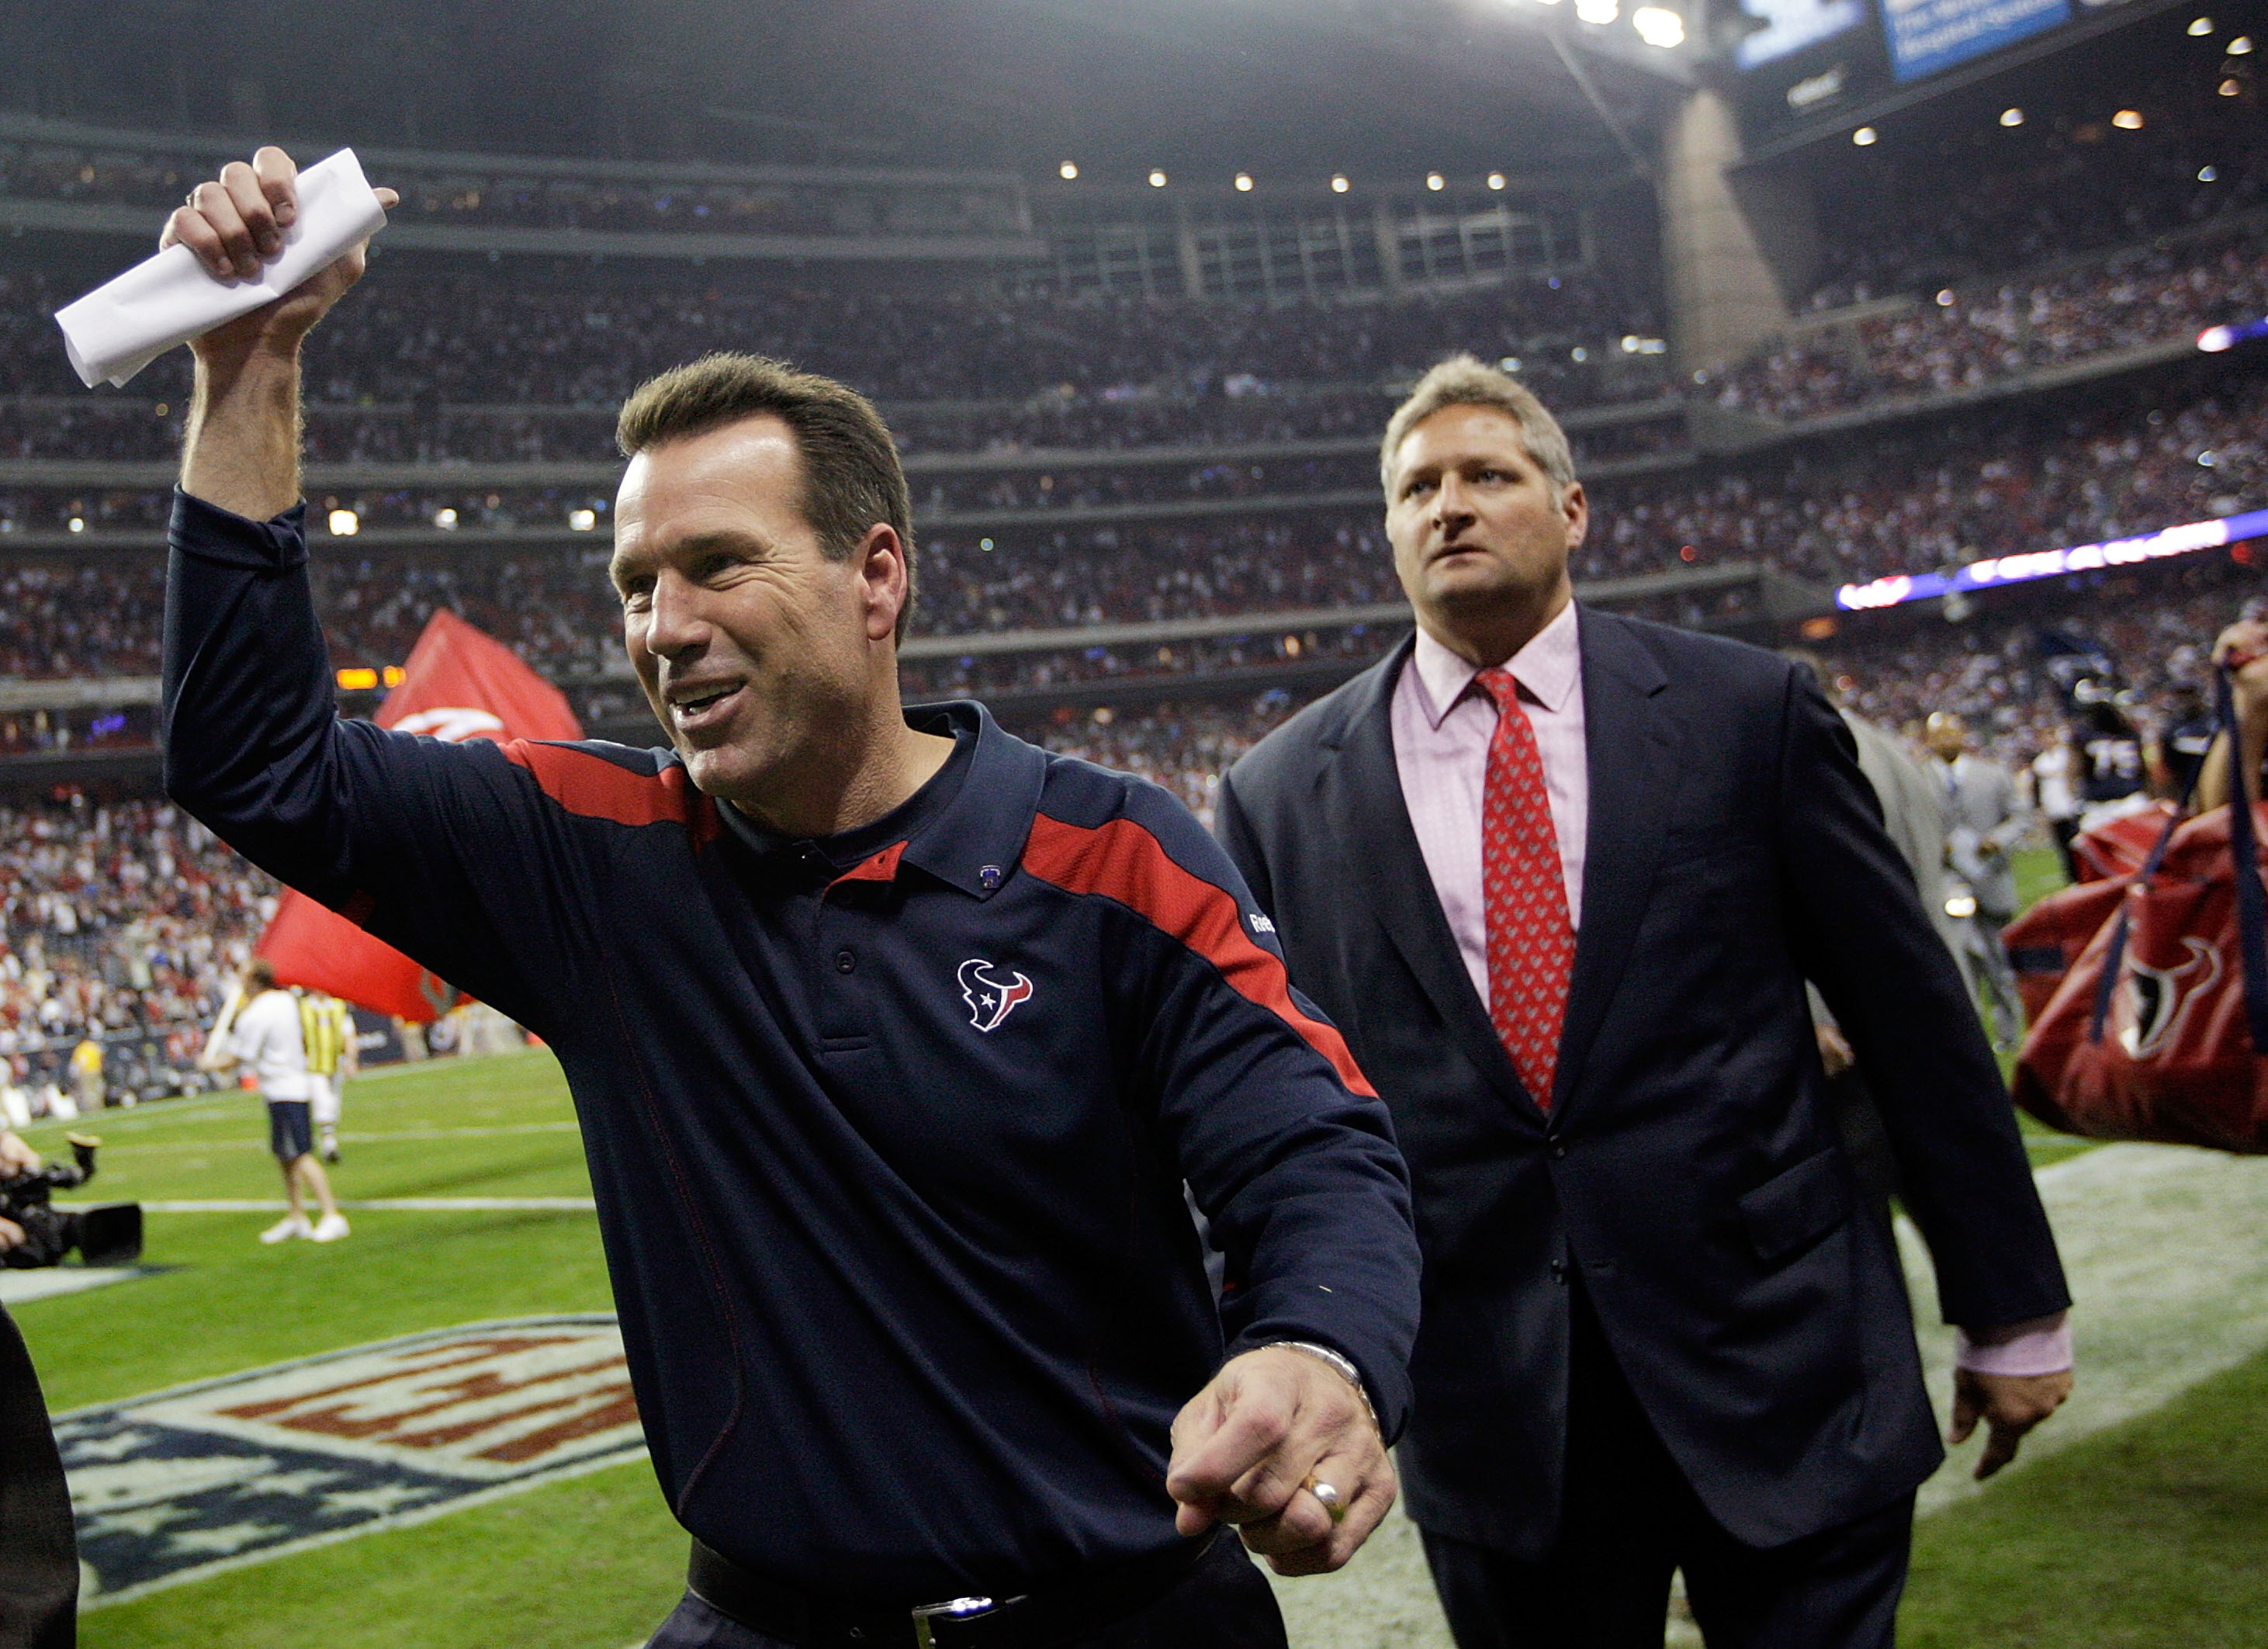 Gary Kubiak seems likely to be celebrating like this again today, except clad in Ravens gear.